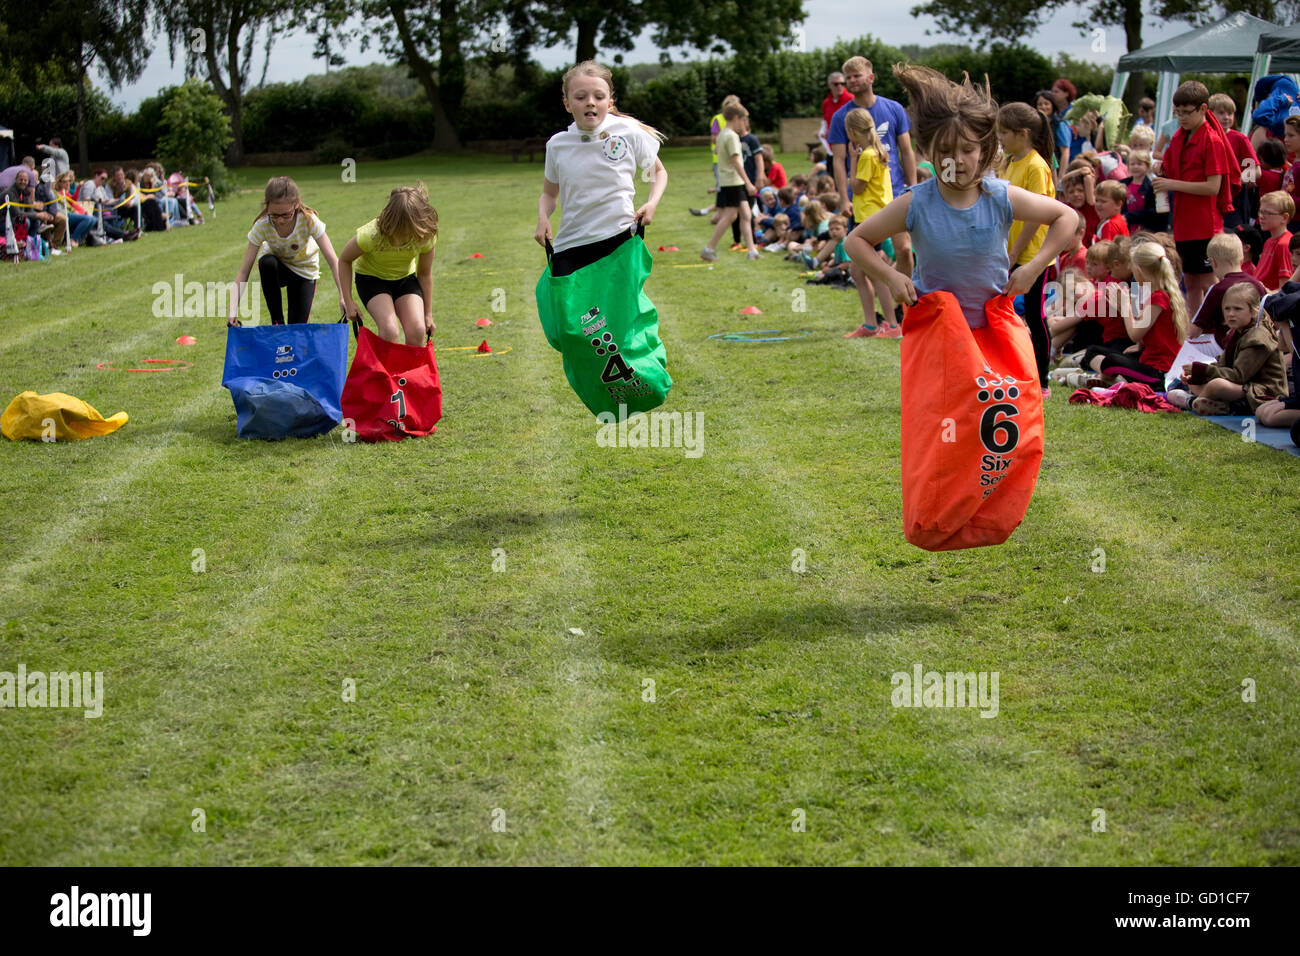 Girls competing in sack race St James Primary School sports day Chipping Campden UK - Stock Image